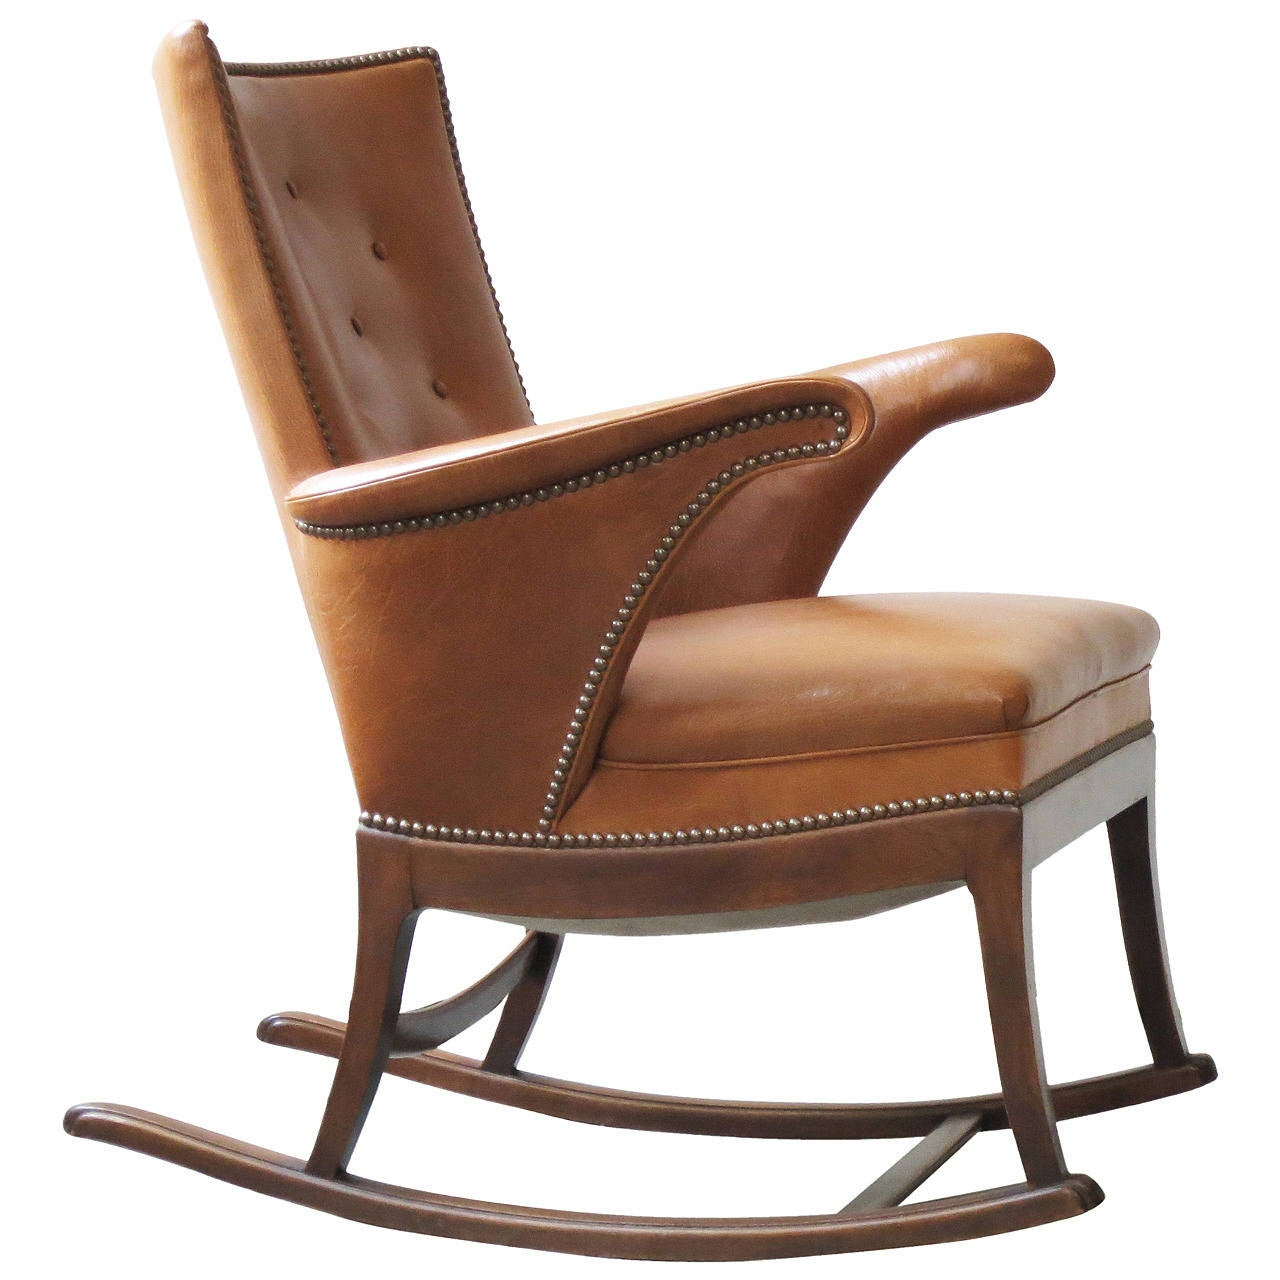 1930s rocking chair by frits henningsen for sale at 1stdibs for Rocking chair